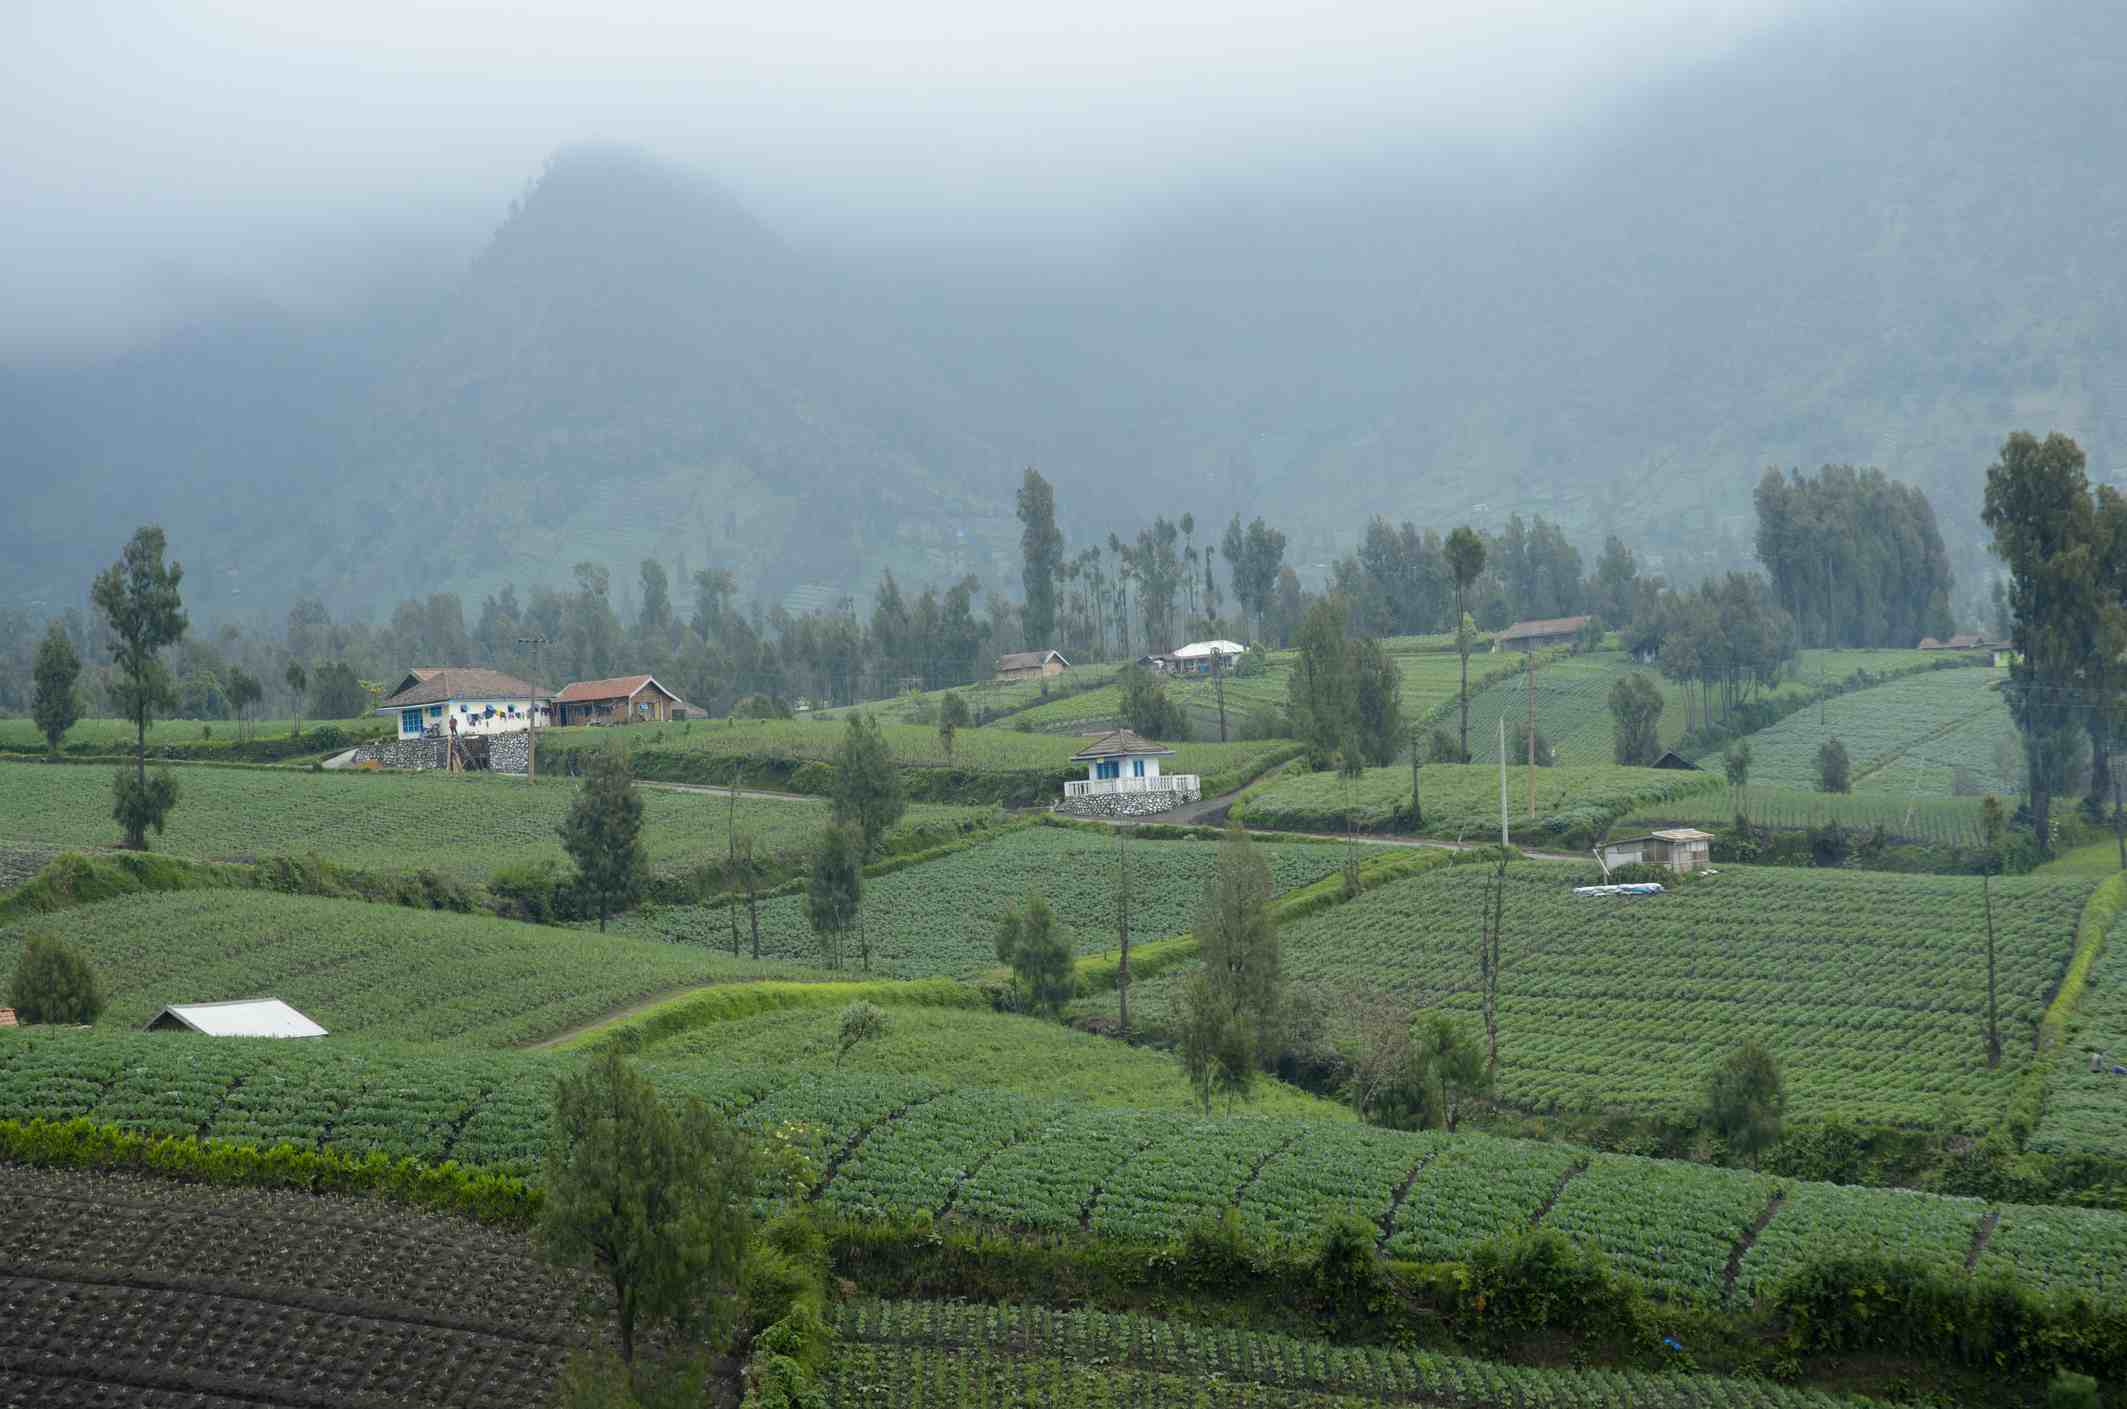 Mist-covered fields and homes of Cemoro Lawang village